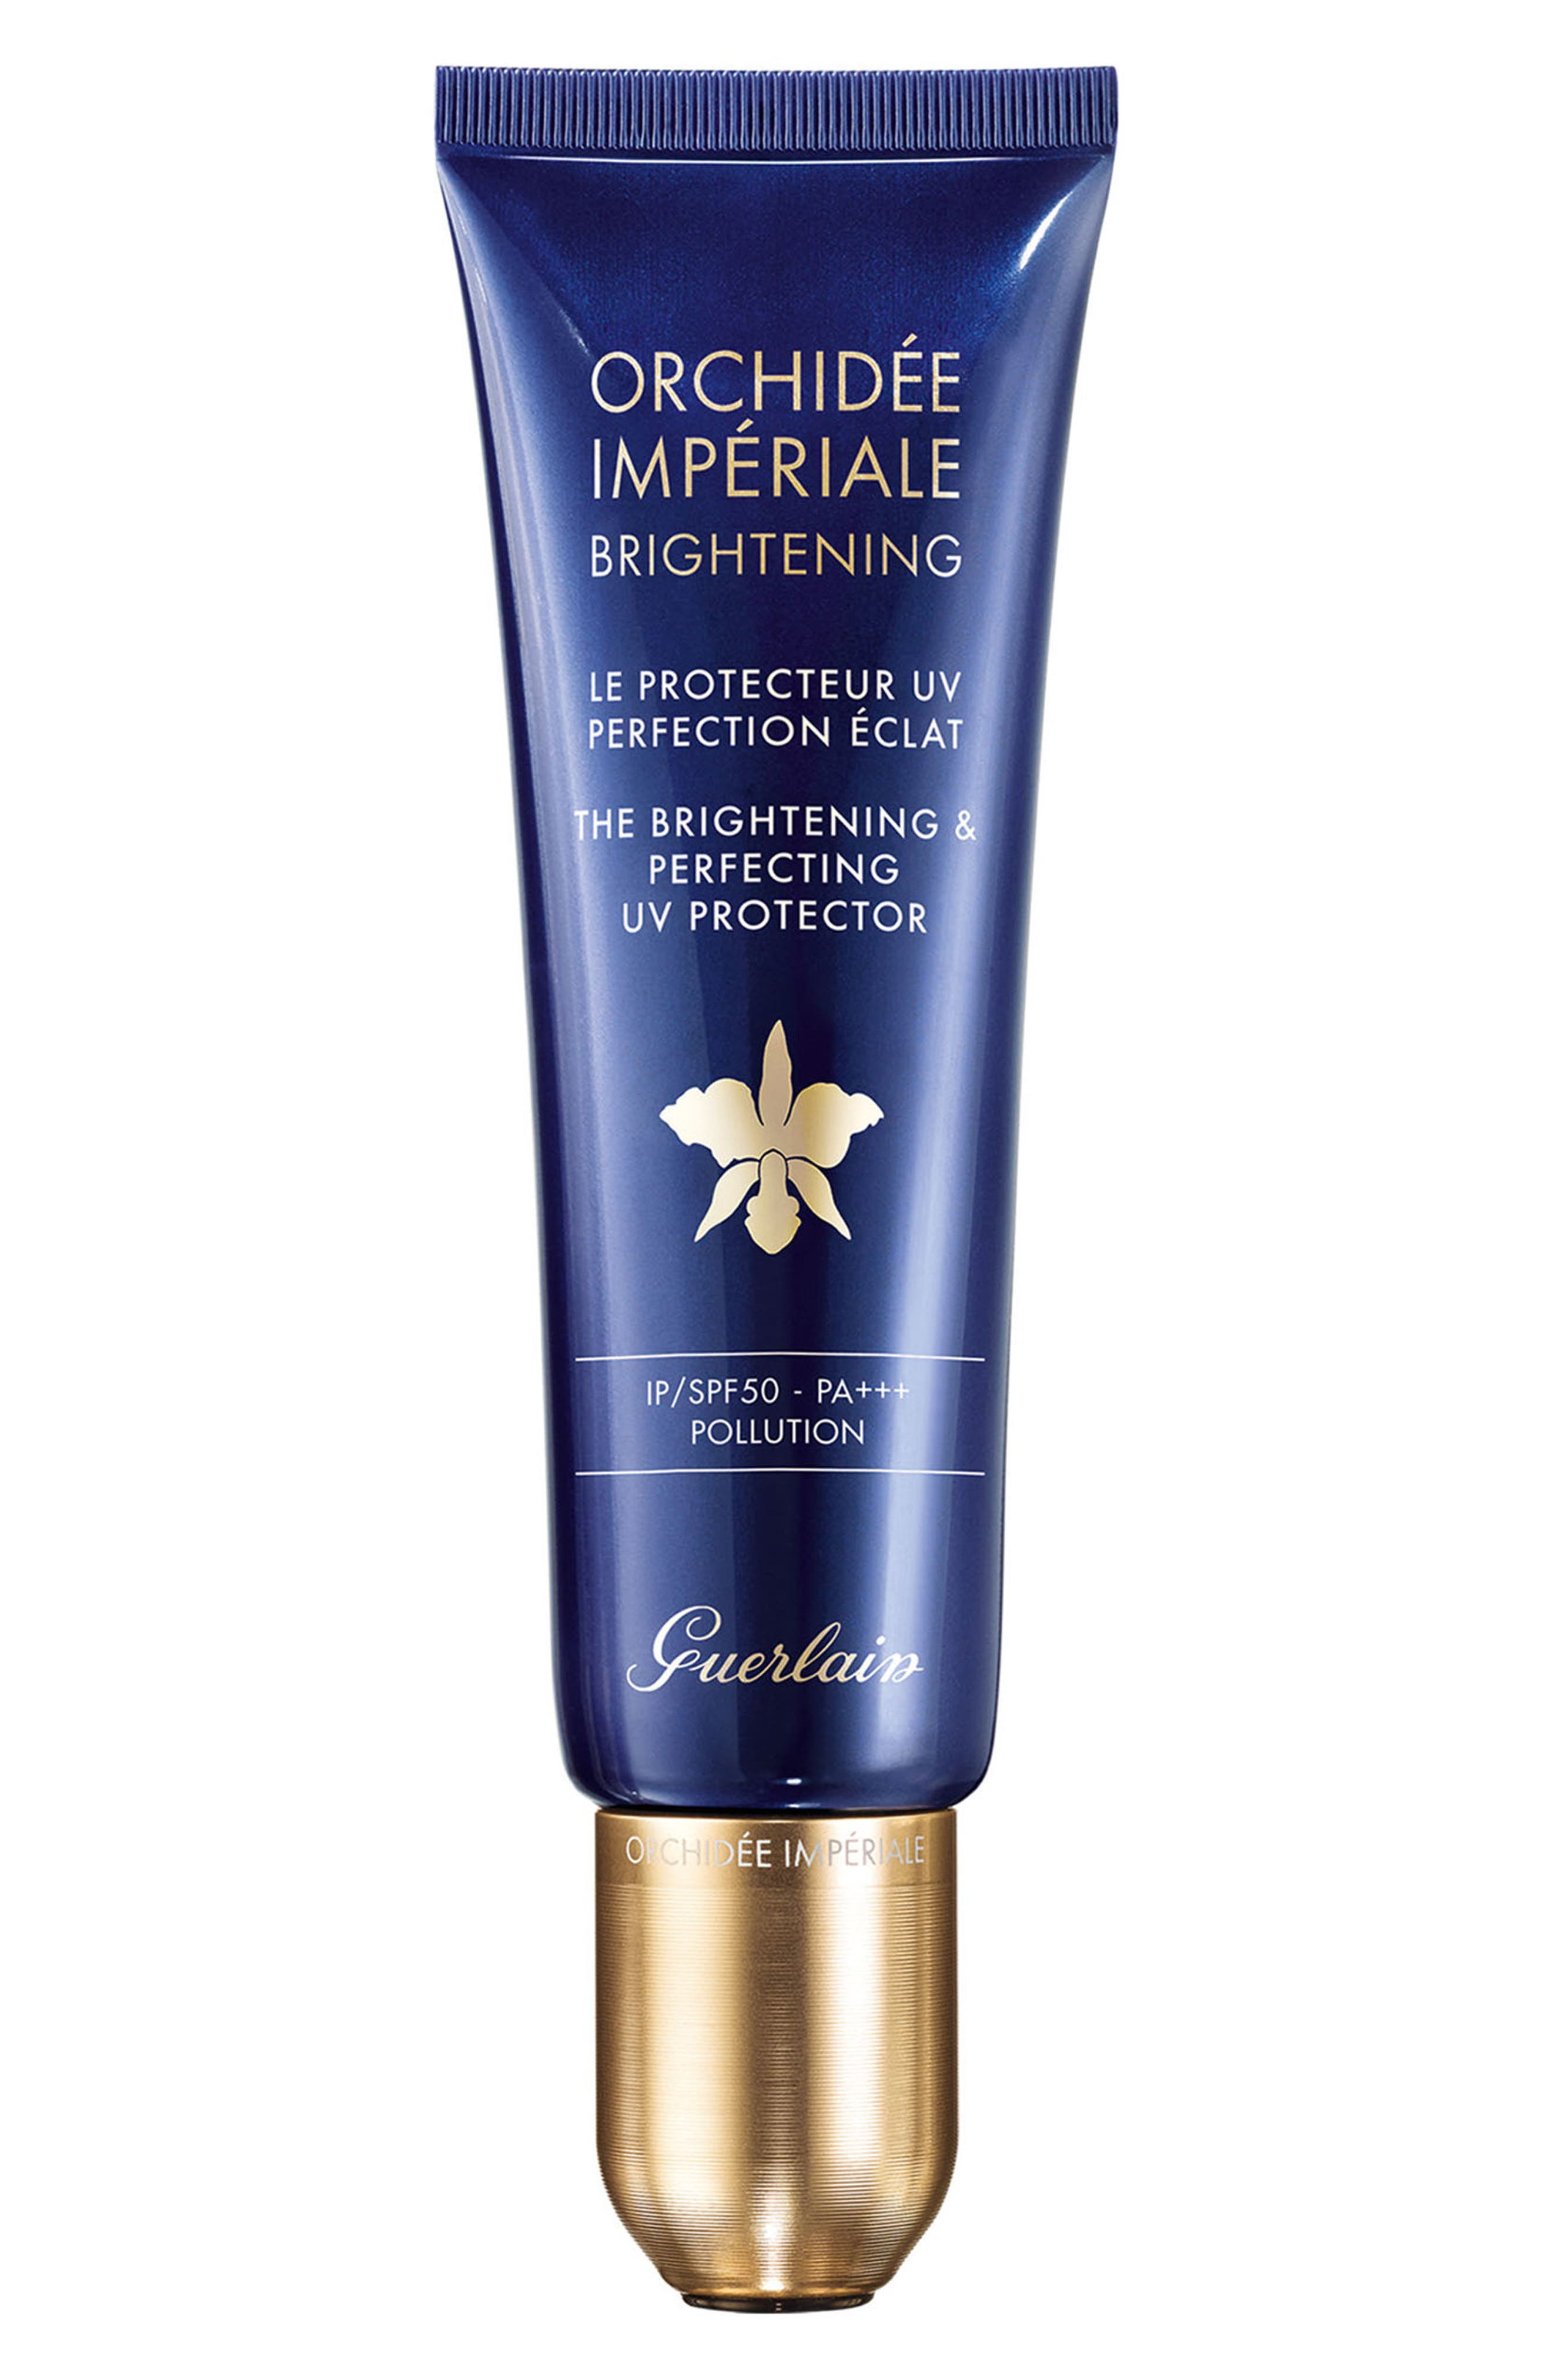 Orchidée Impériale The Brightening & Perfecting UV Protector SPF 50,                             Main thumbnail 1, color,                             NO COLOR